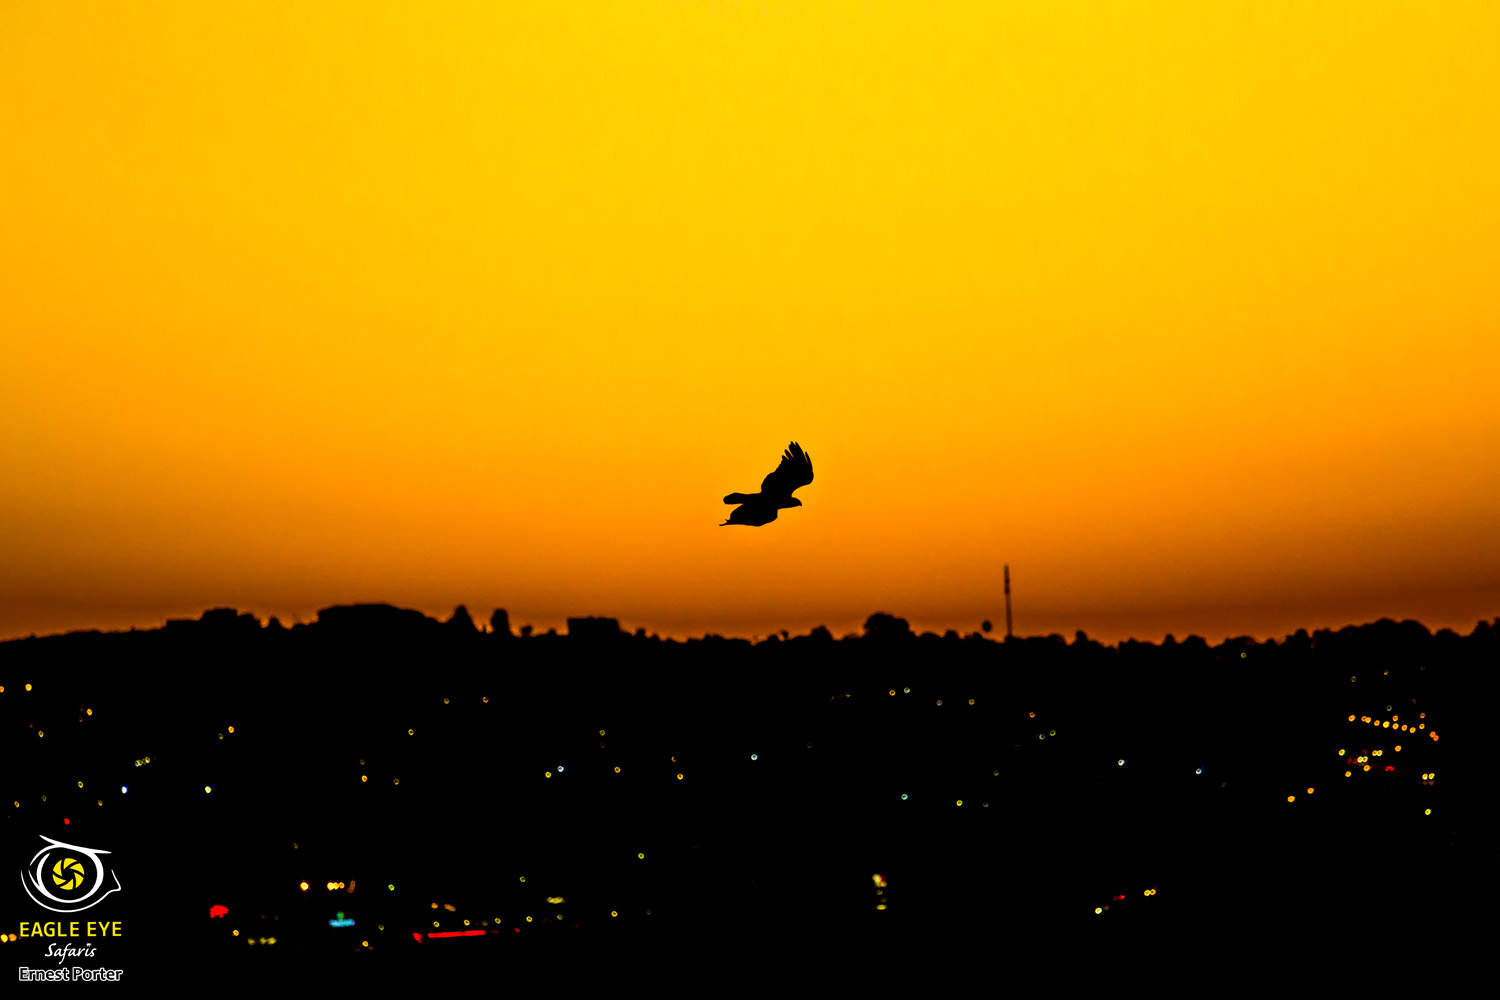 City eagle at sunset (Verreaux's Eagle)